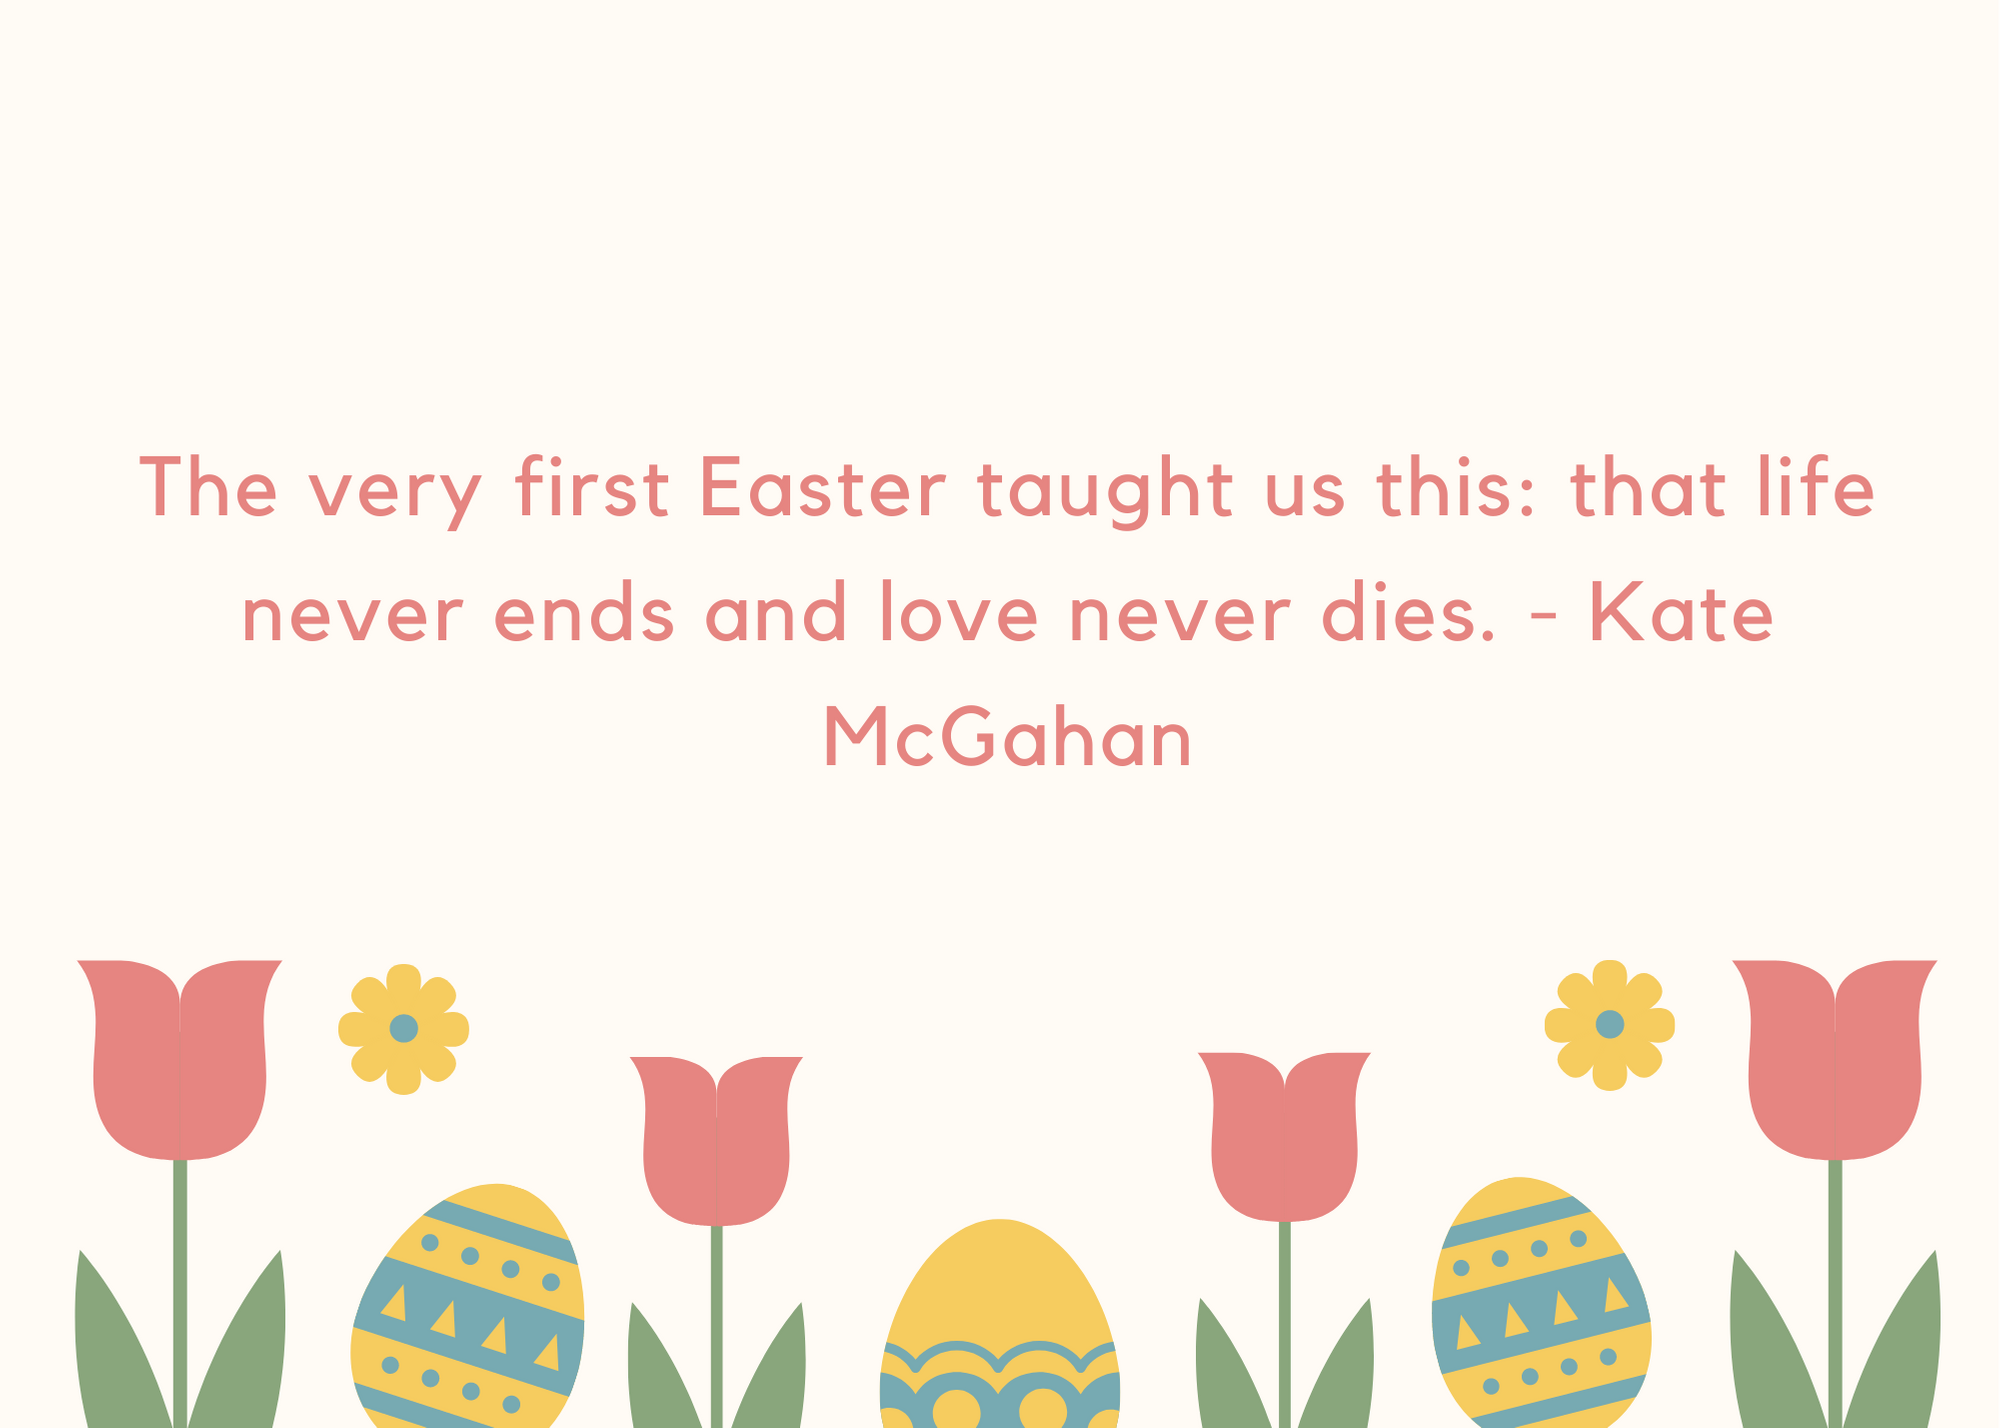 The very first Easter taught us this: that life never ends and love never dies. - Kate McGahan